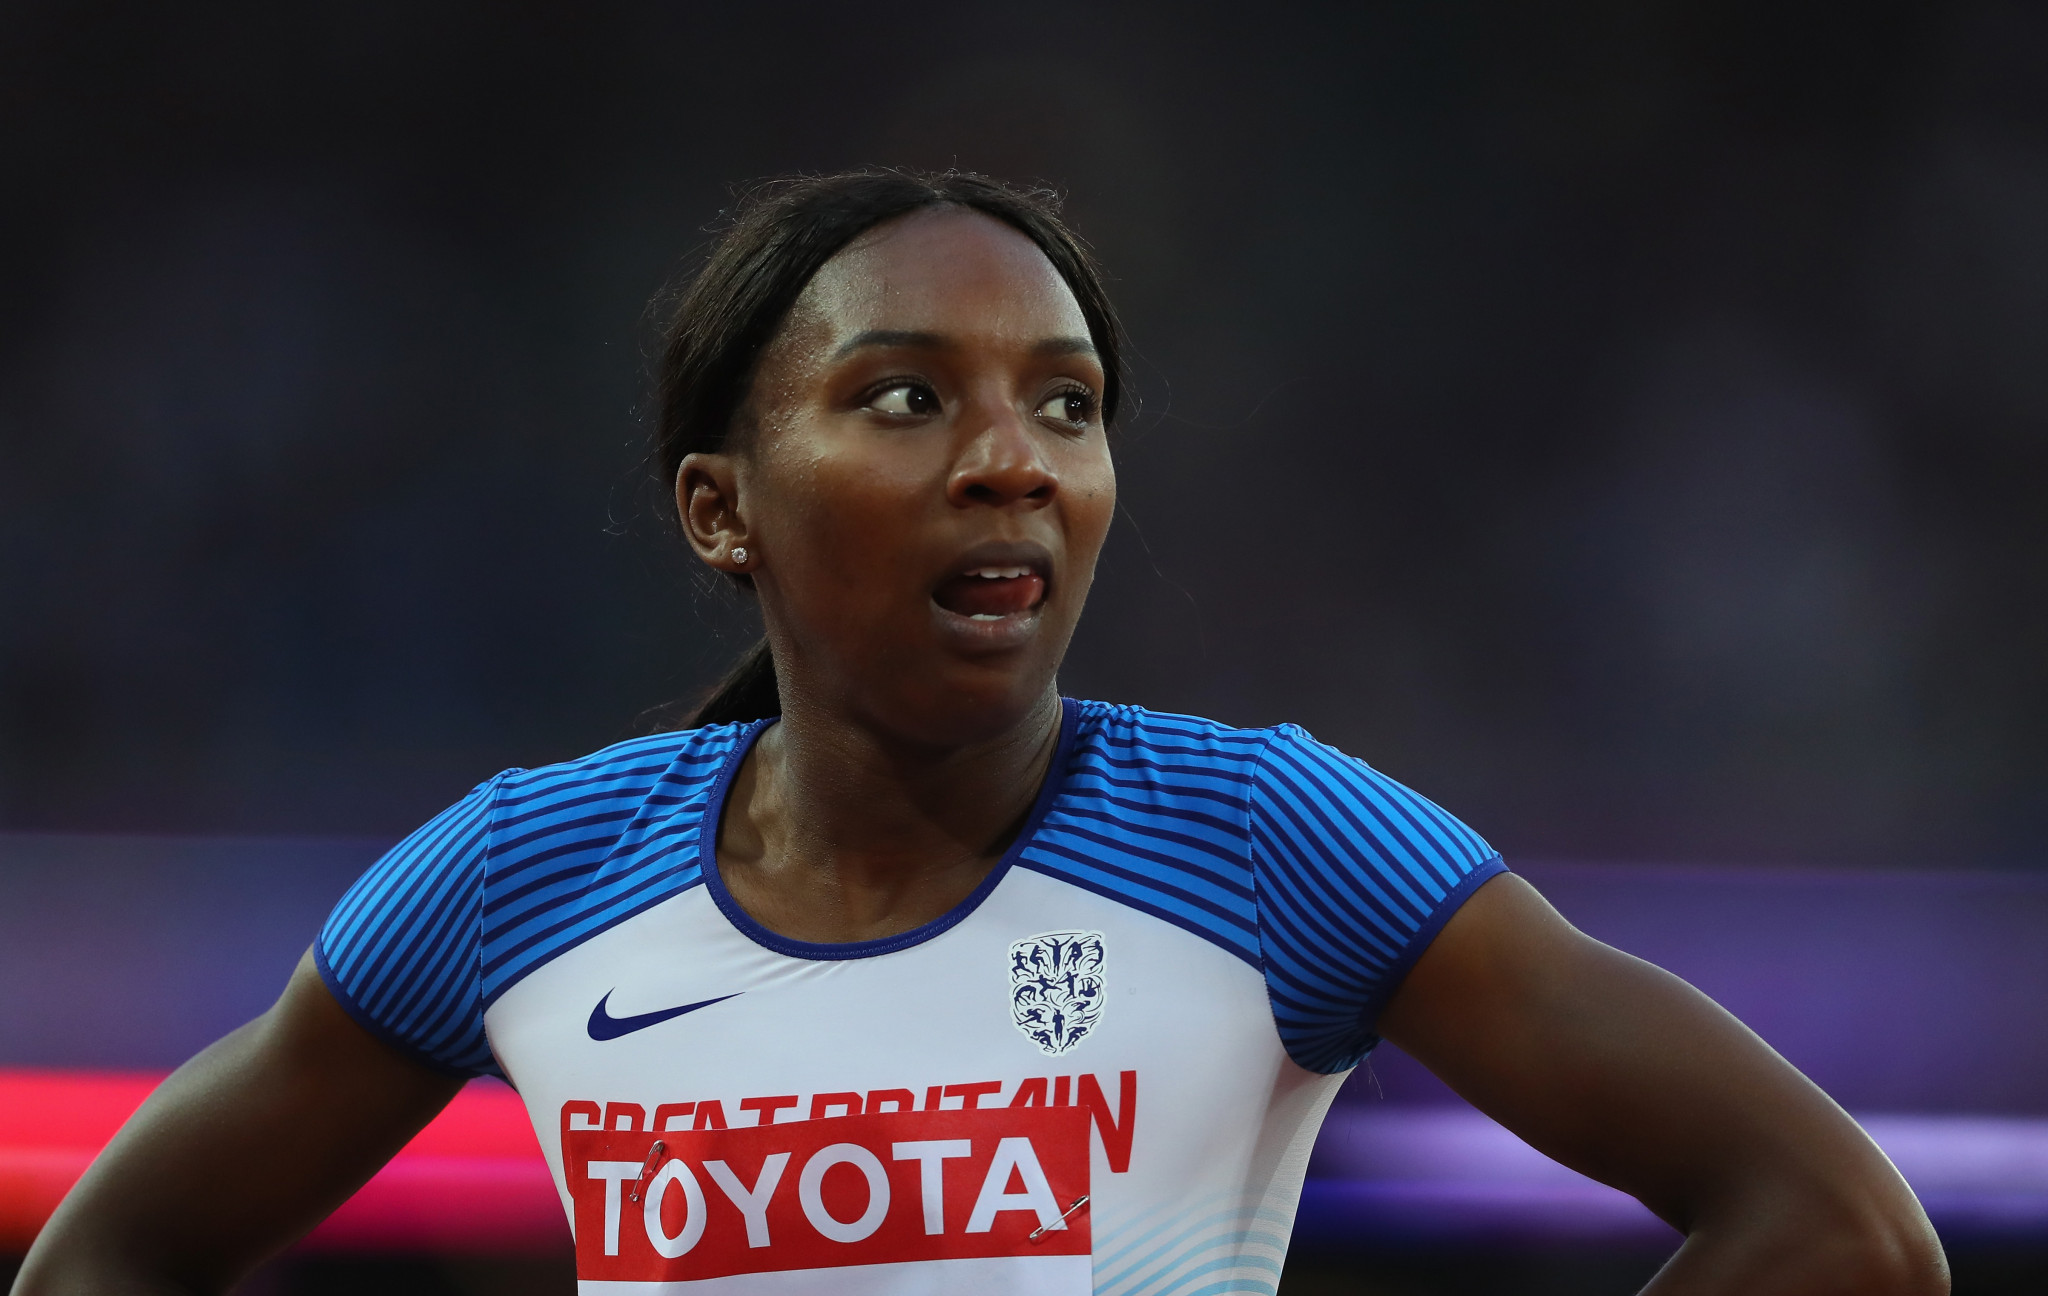 Metropolitan Police apologise to British sprinter Williams over stop and search